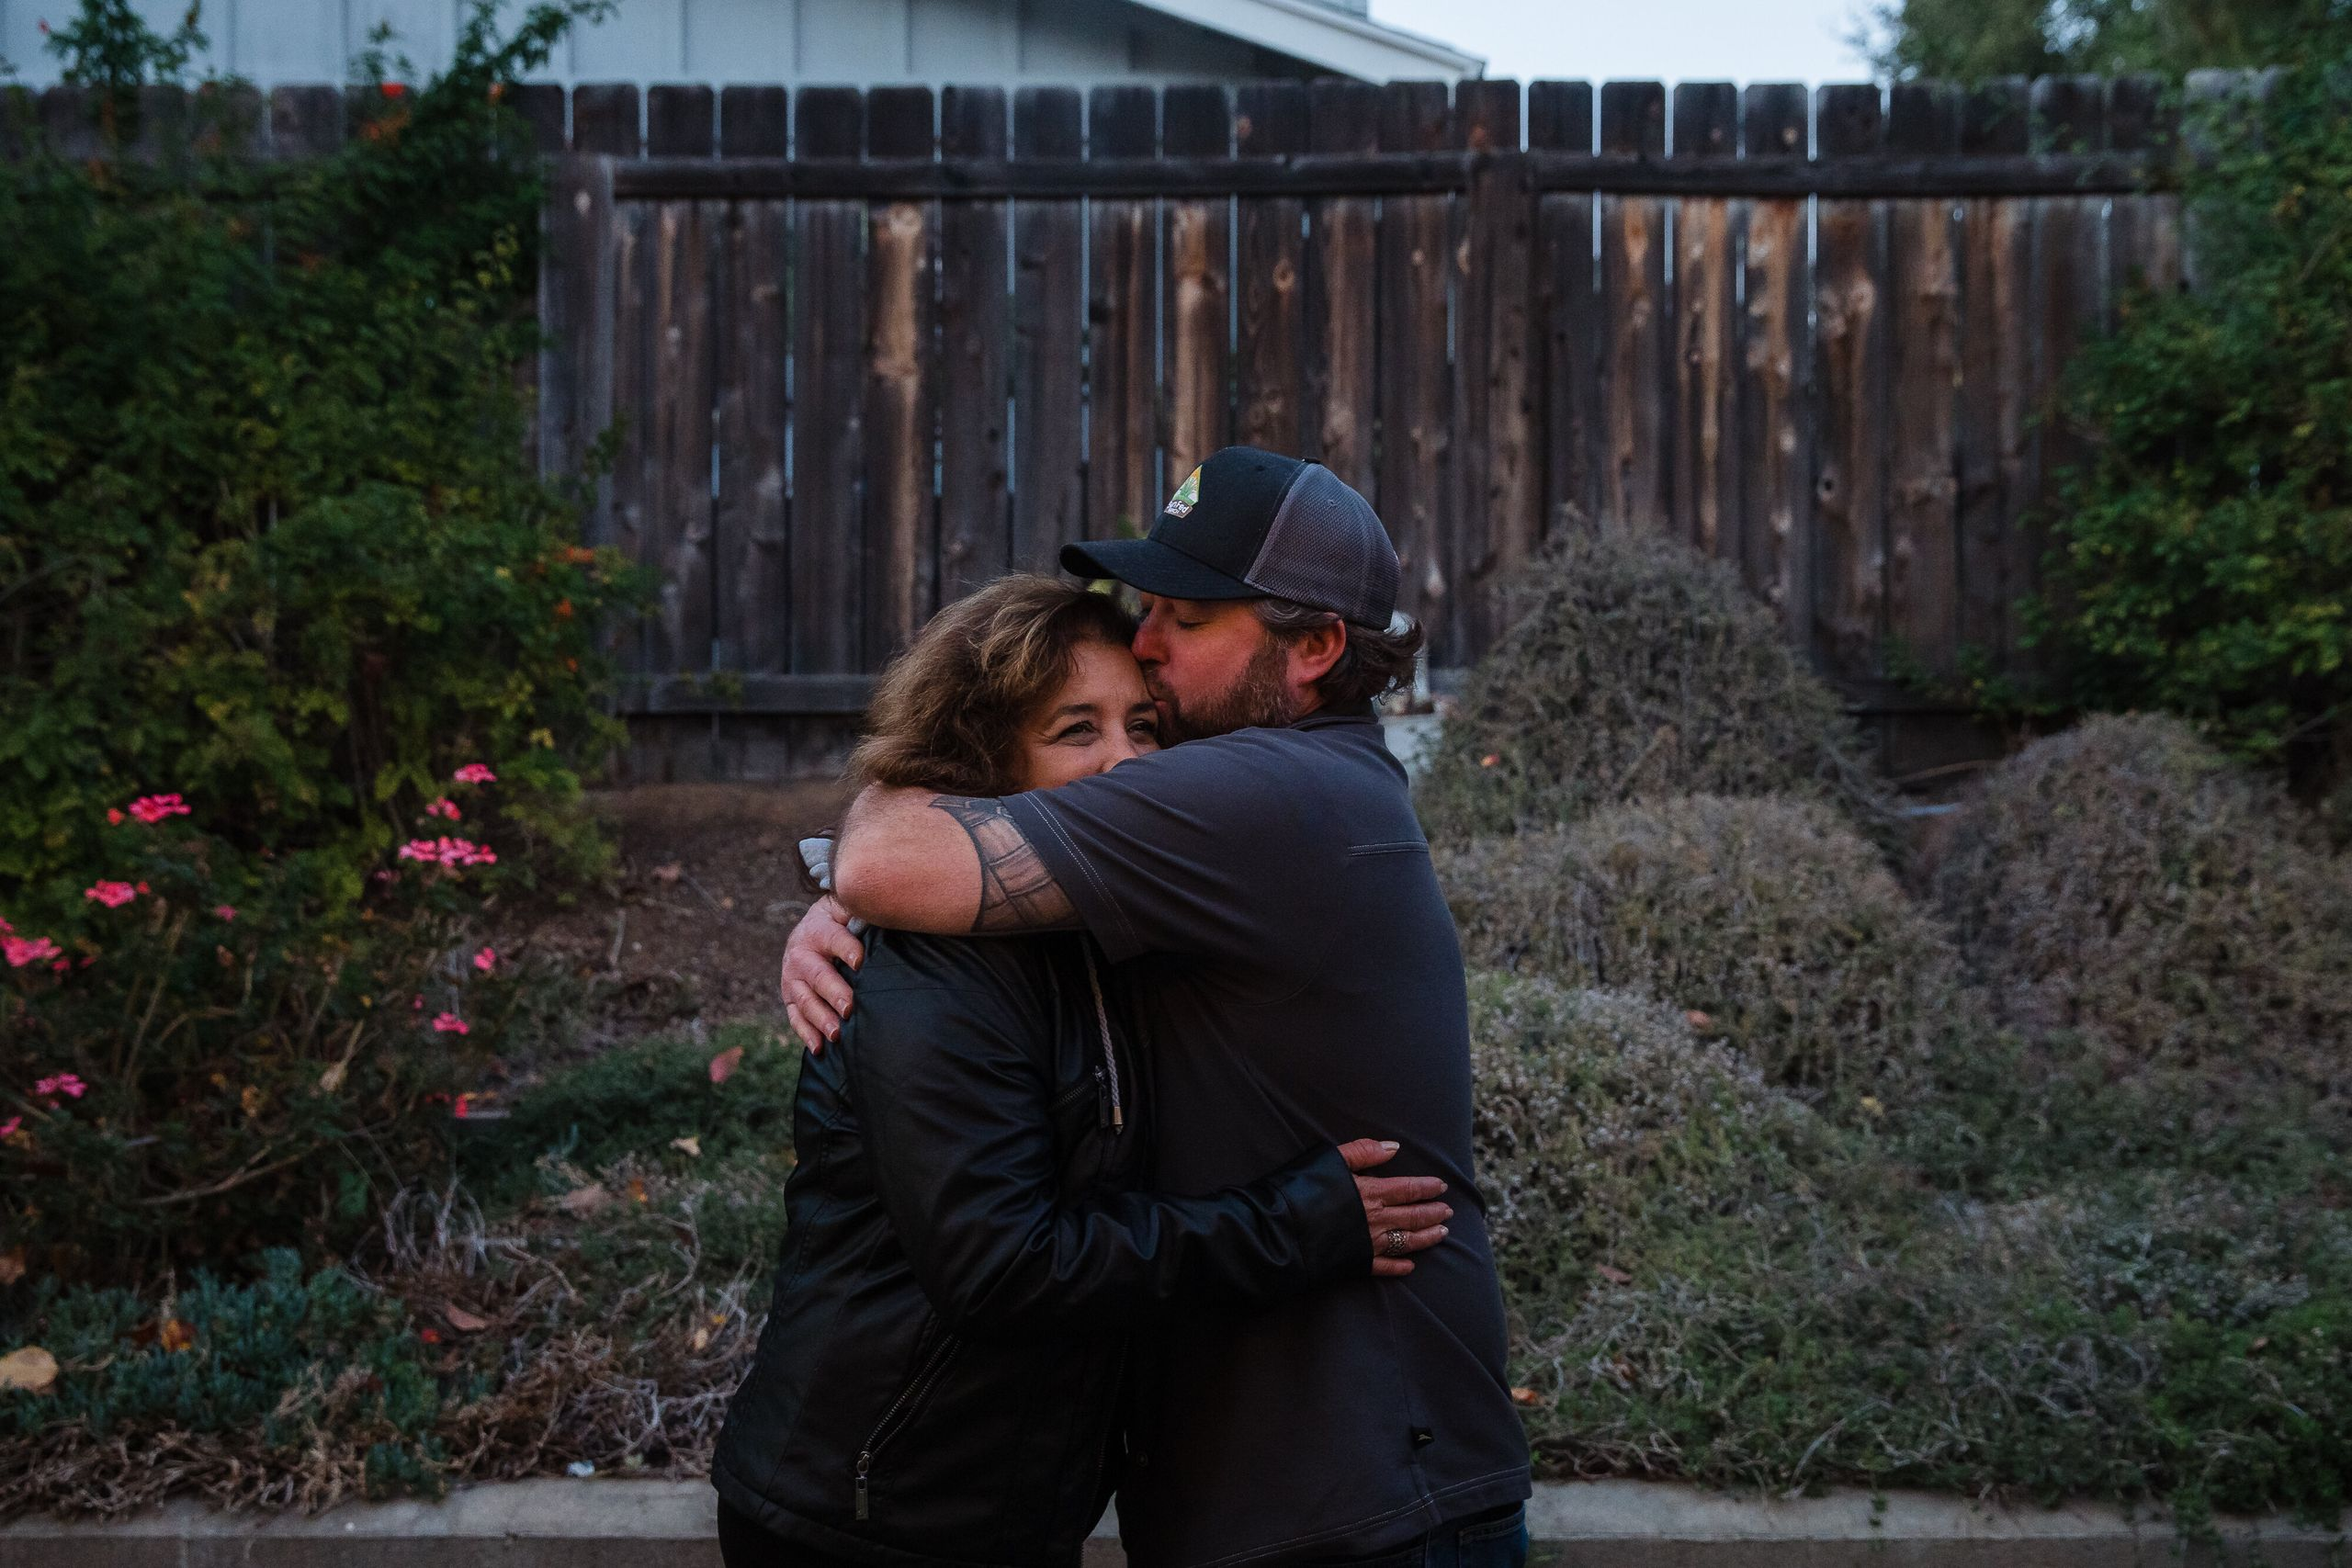 Raquel Salorio and Mike Kurtz hug in her son Joseph's backyard in San Diego.